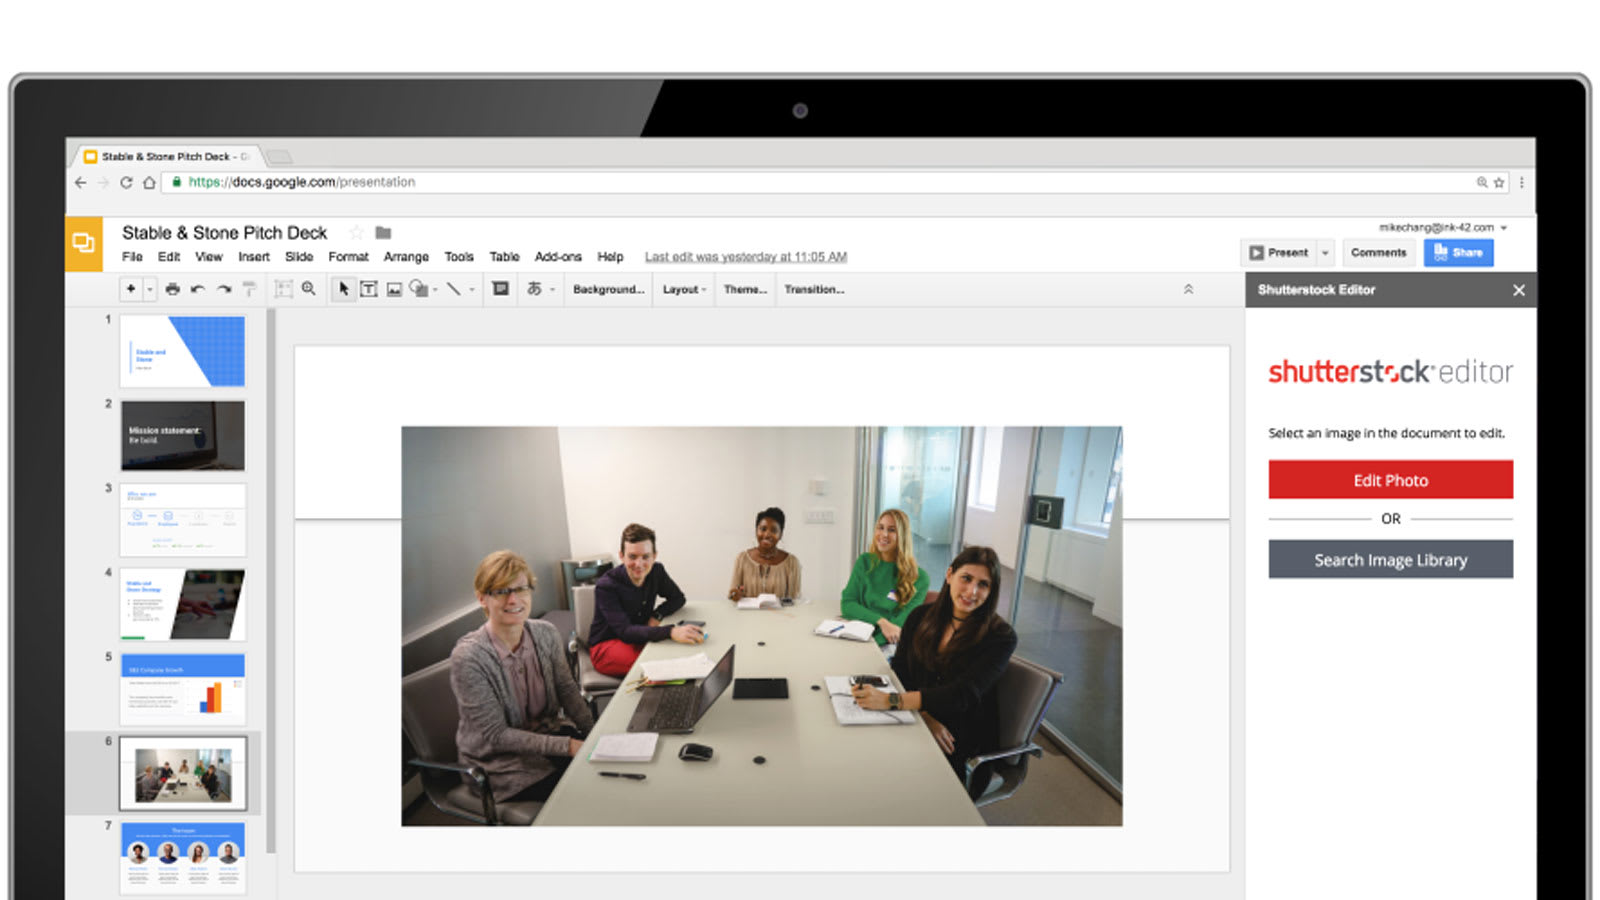 google slides add ons pull in content from around the web